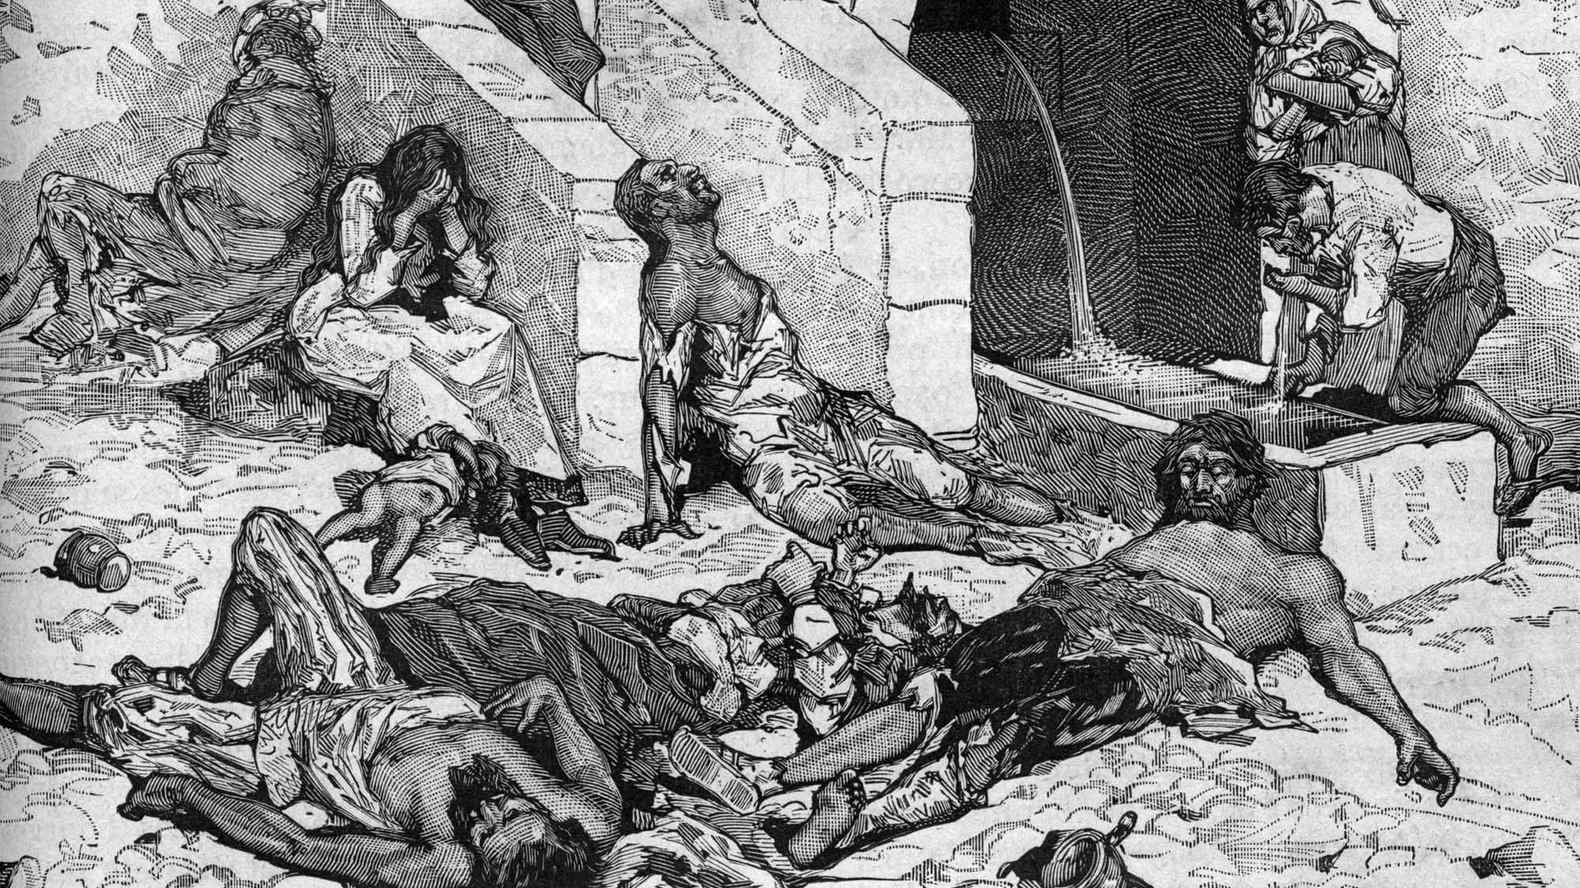 William Shakespeare witnessed the terrifying consequences of the black death.